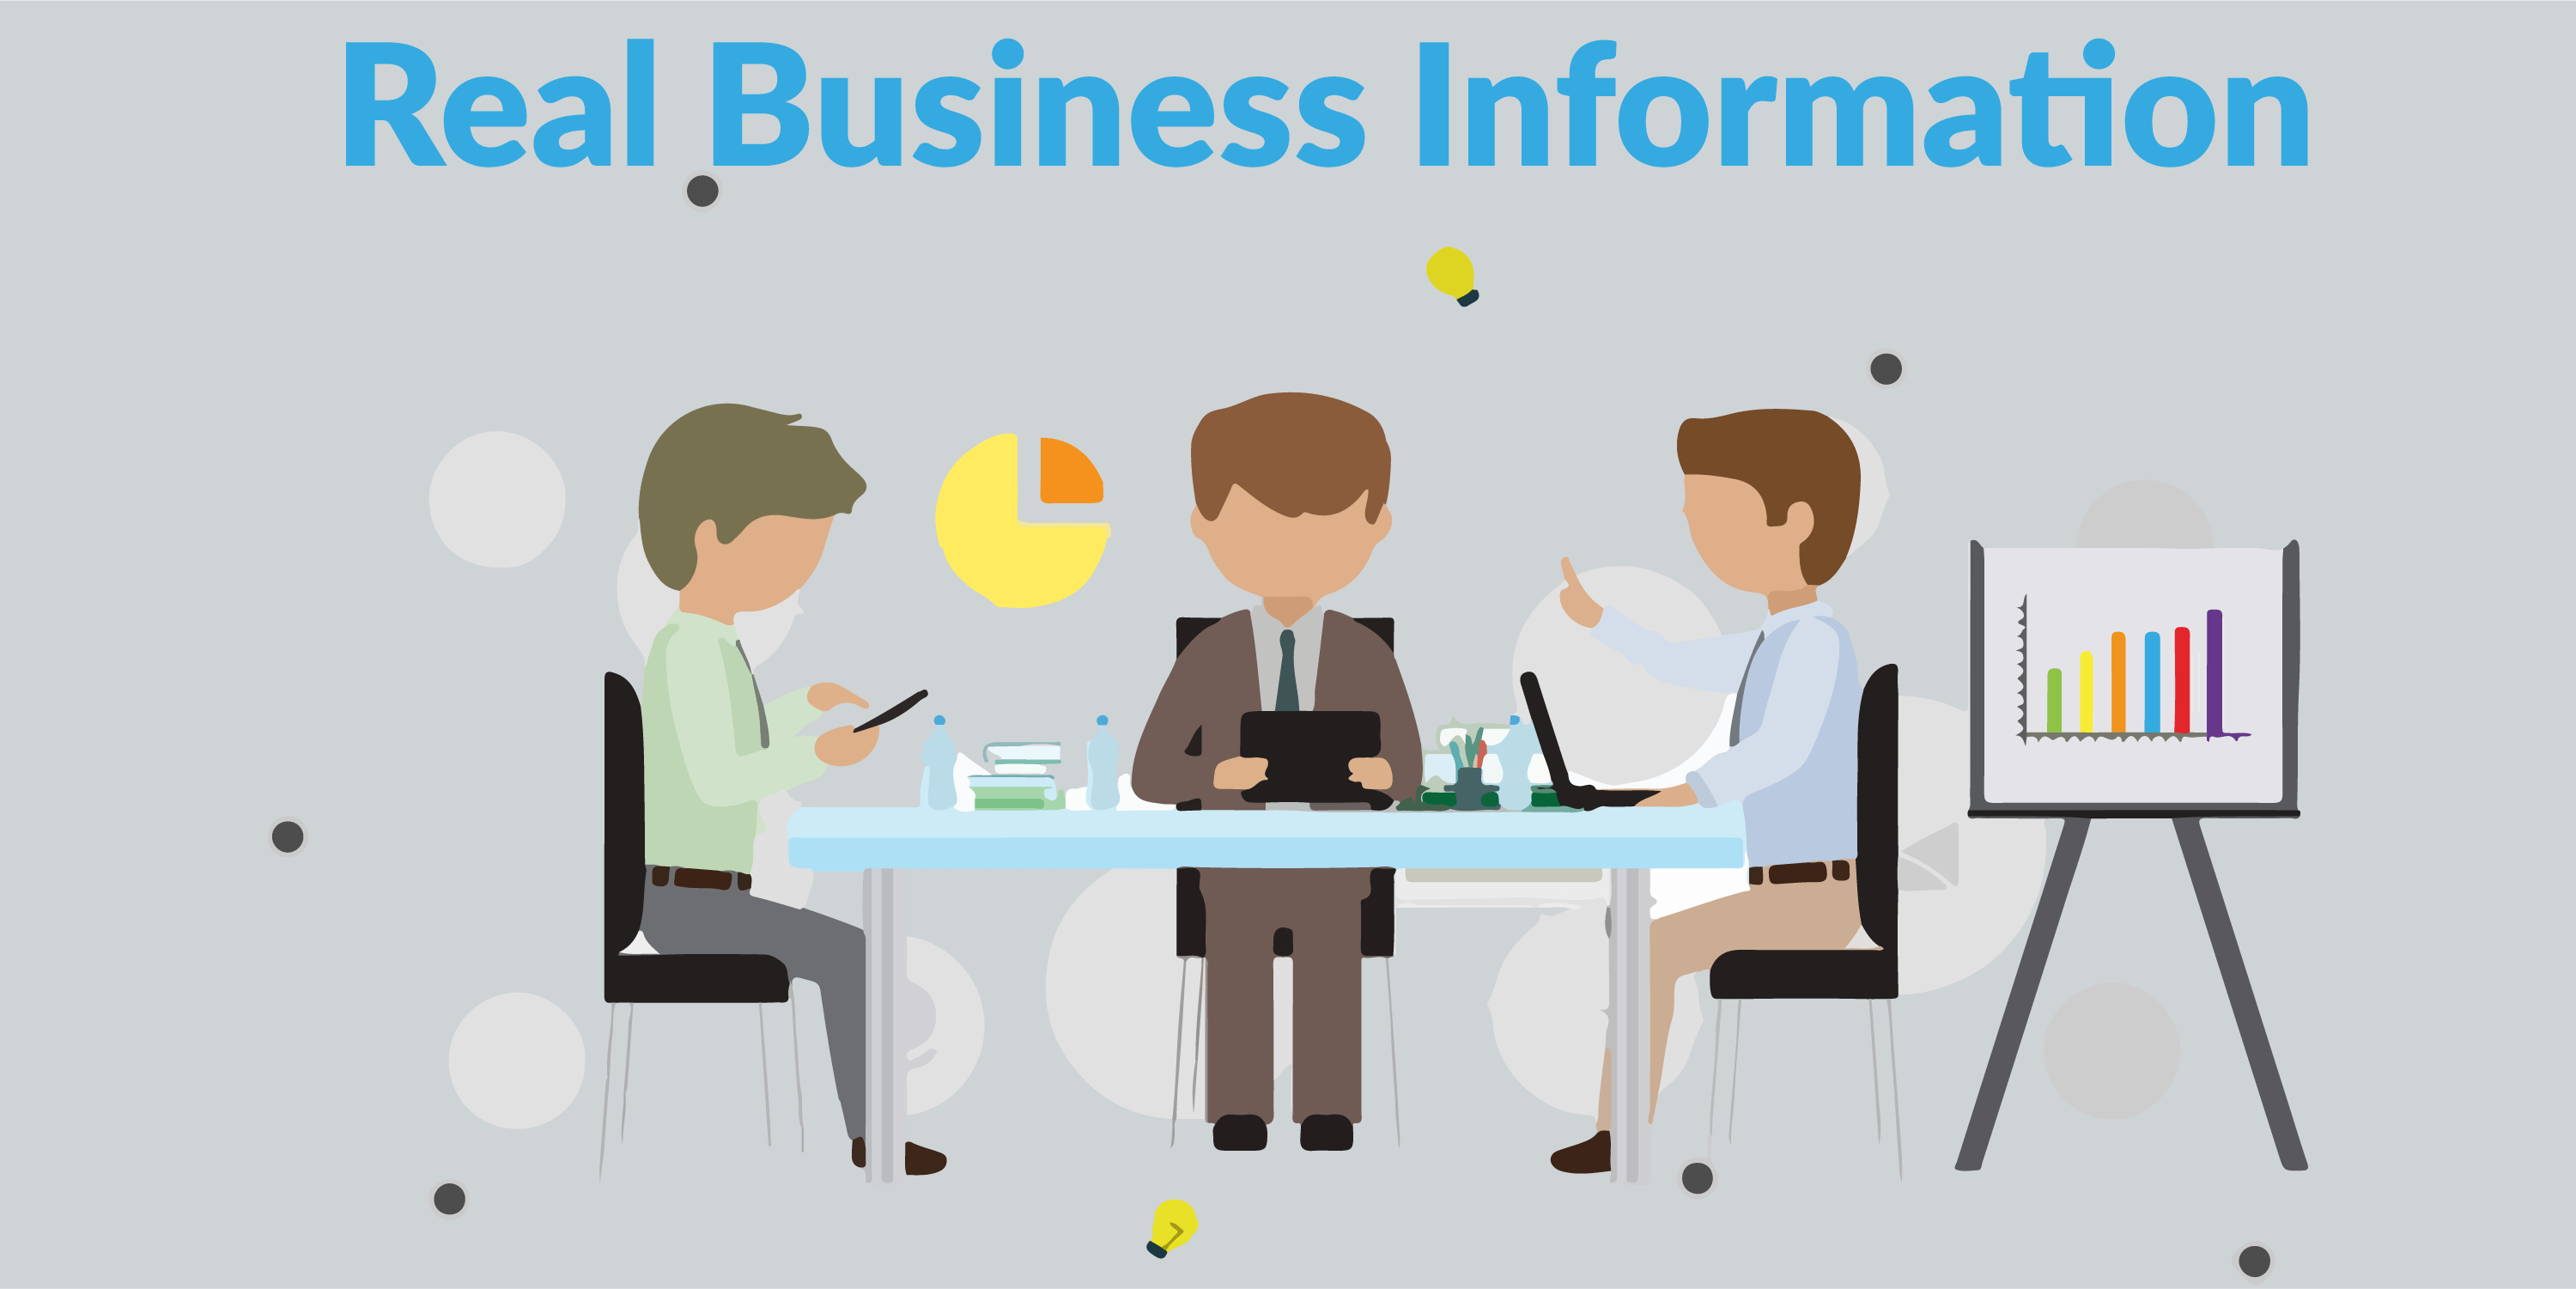 REAL BUSINESS INFORMATION